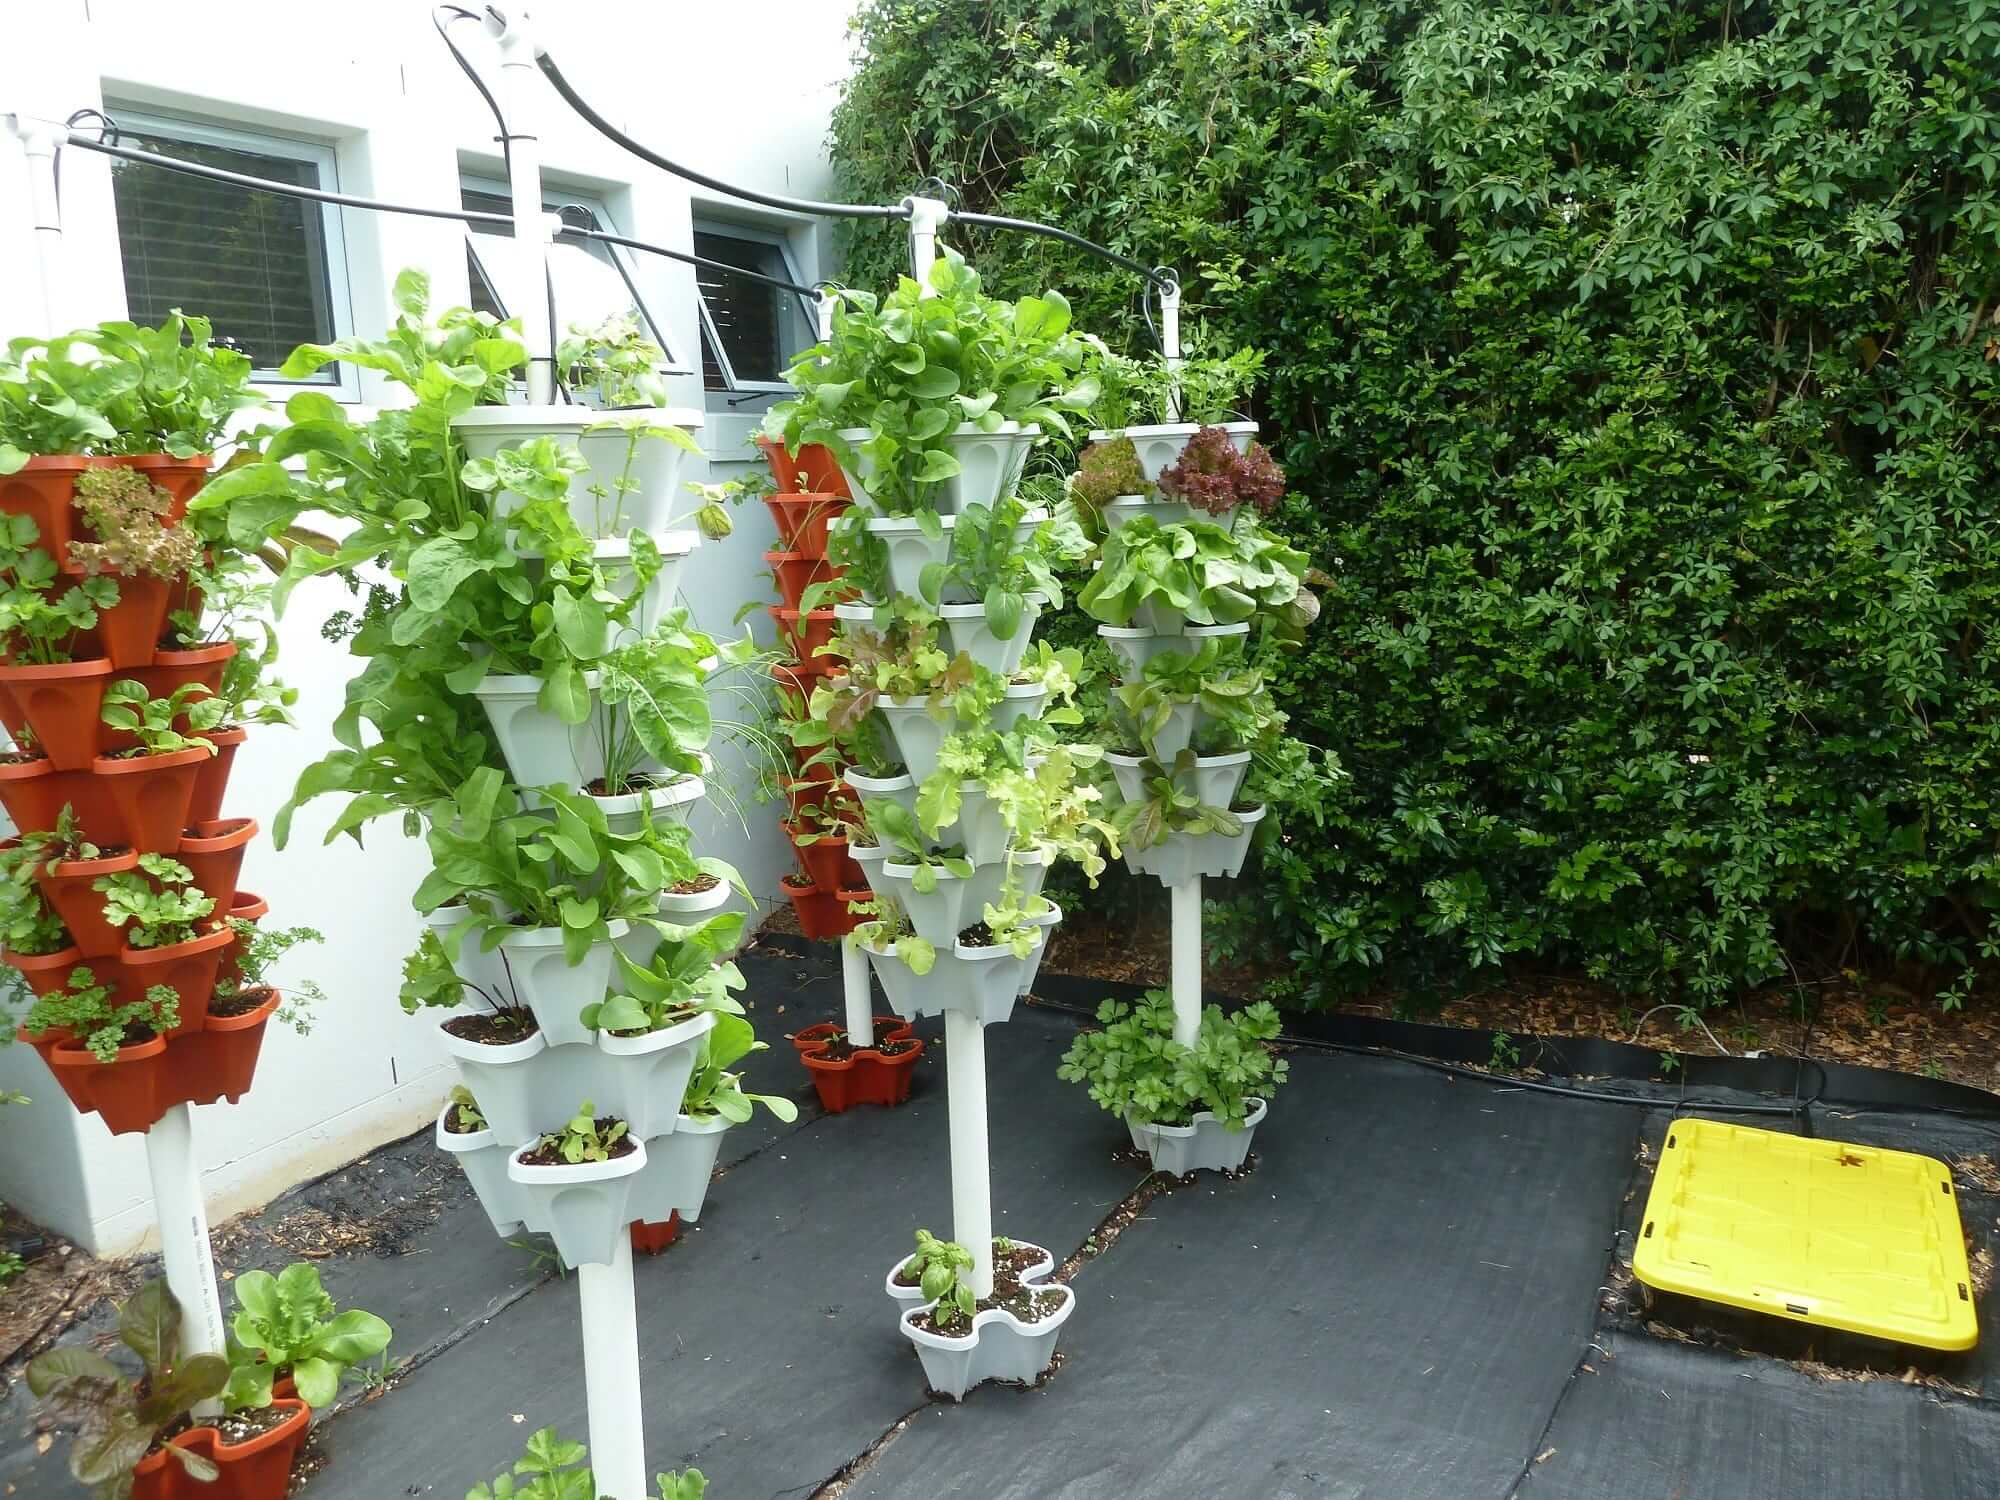 12 Relevant Information About Hydroponic Gardening